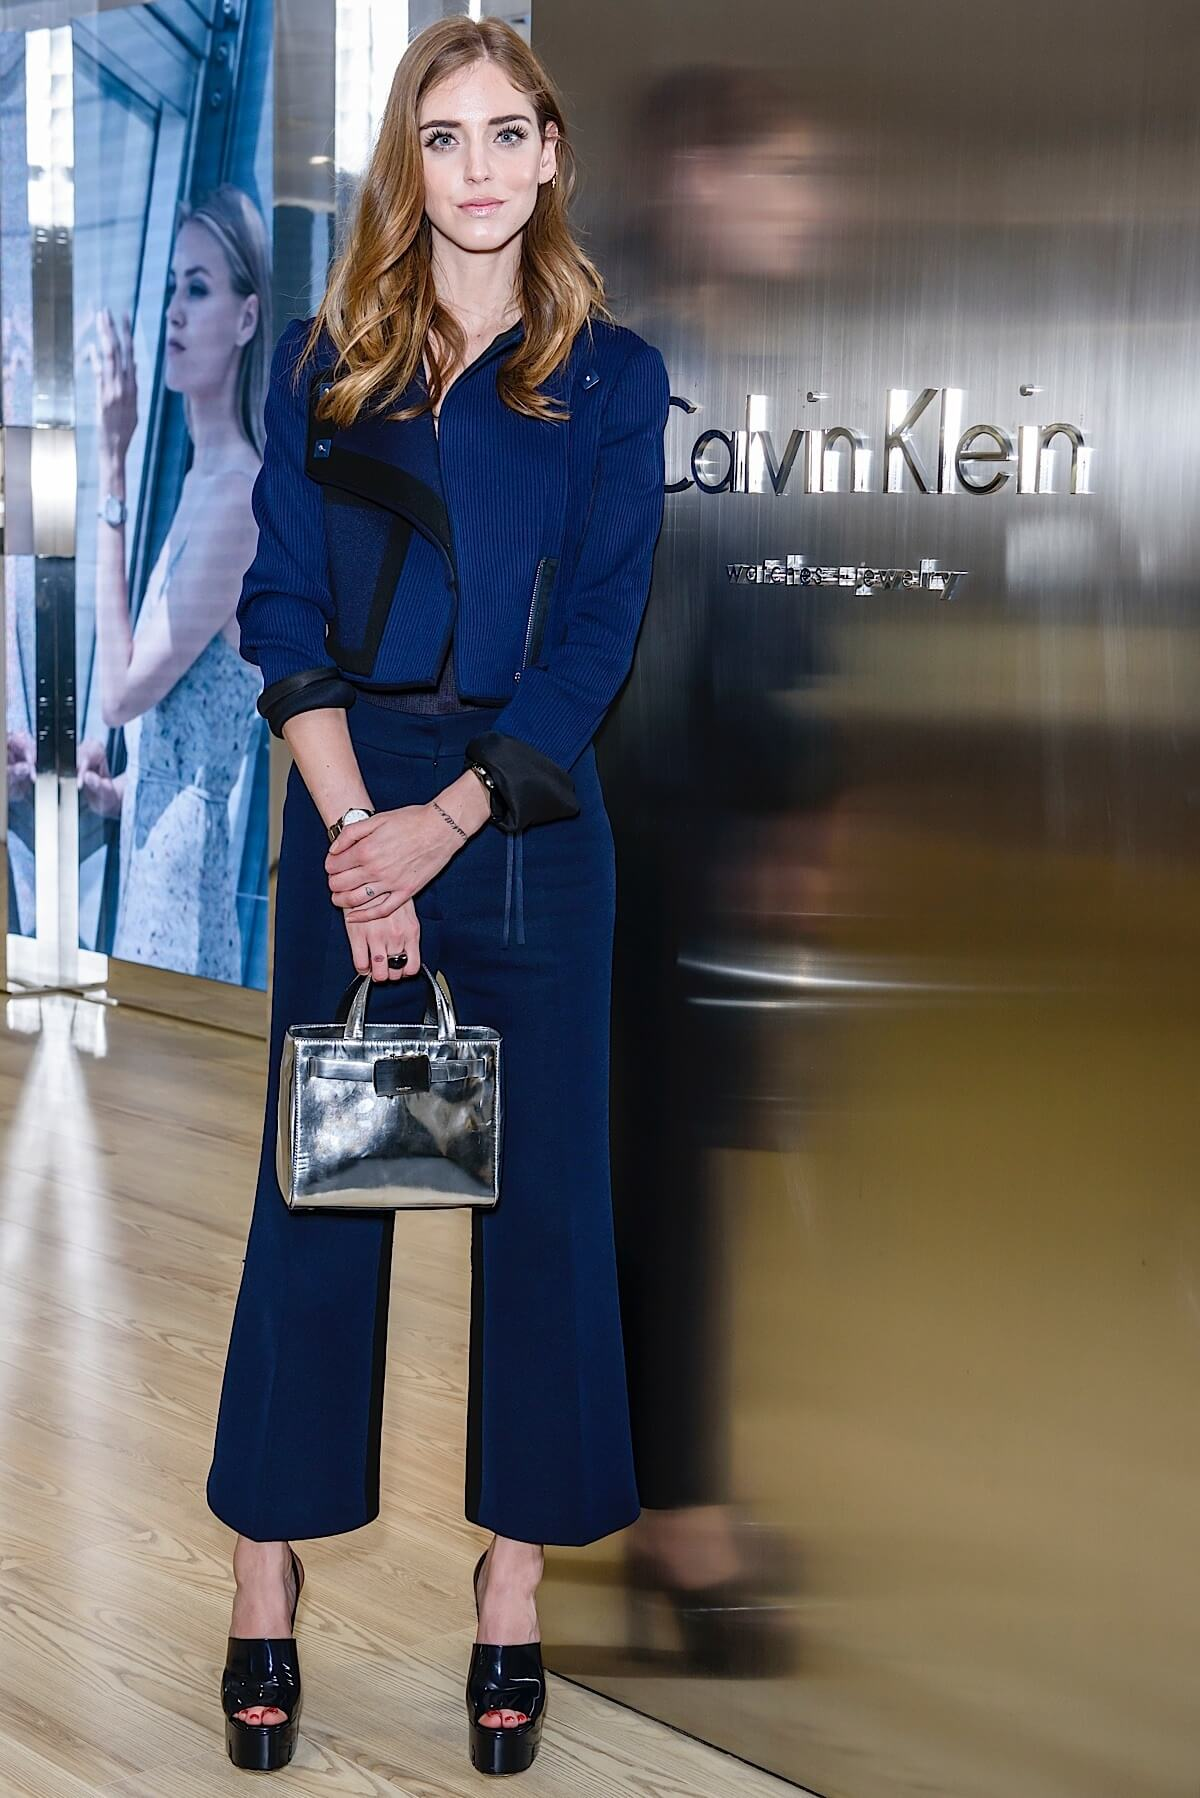 BASEL, SWITZERLAND - MARCH 19:  Chiara Ferragni attends the Calvin Klein Watches & Jewelery booth at Baselworld 2015 on March 19, 2015 in Basel, Switzerland.  (Photo by Clemens Bilan/Getty Images for Calvin Klein)